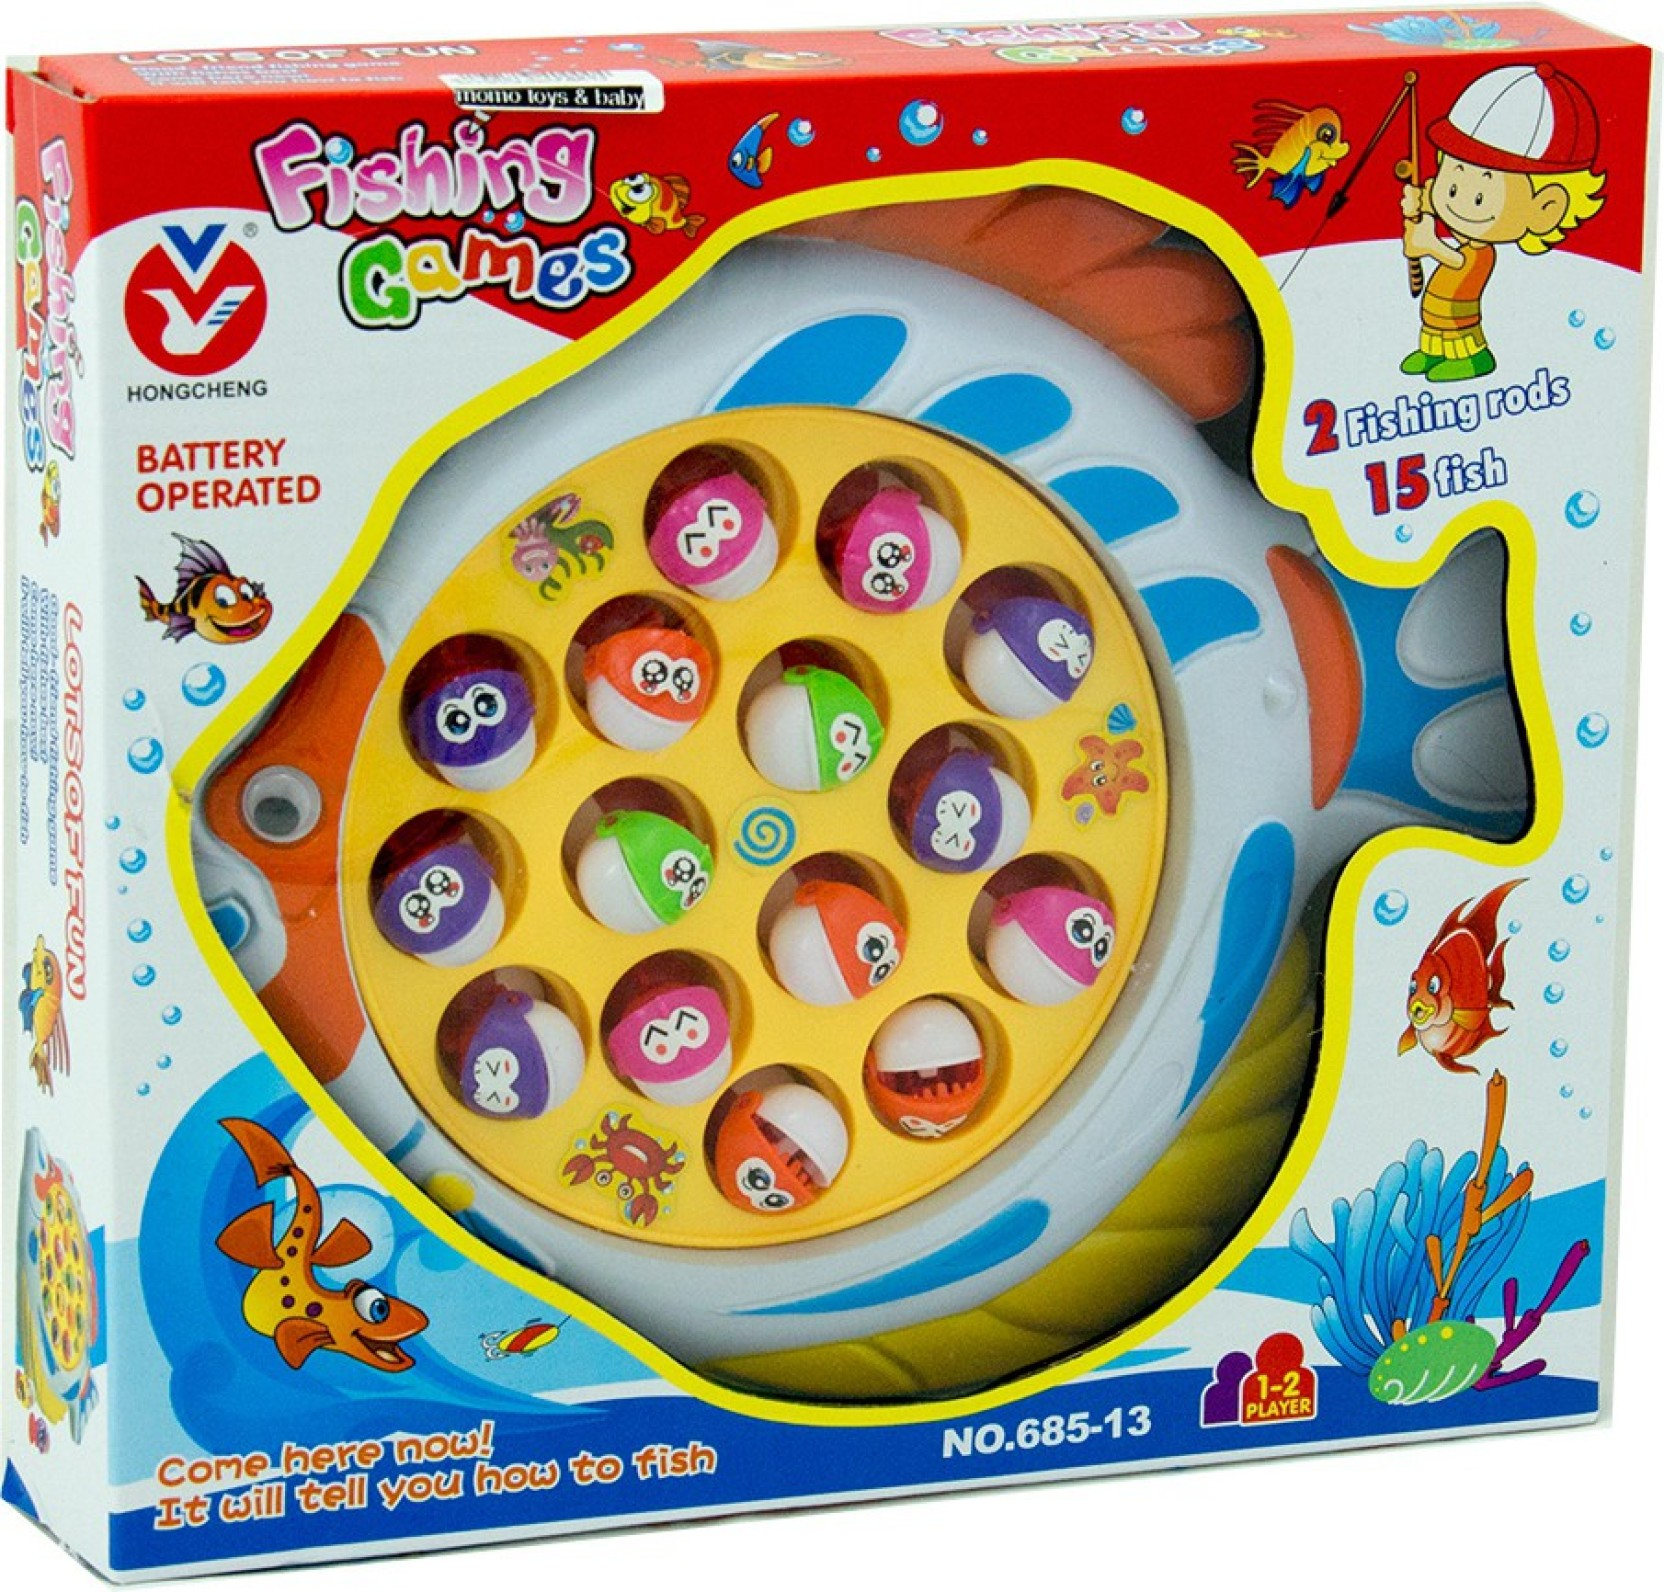 Fishing Game Toy : Lavidi lets go fishing magnetic game for kids